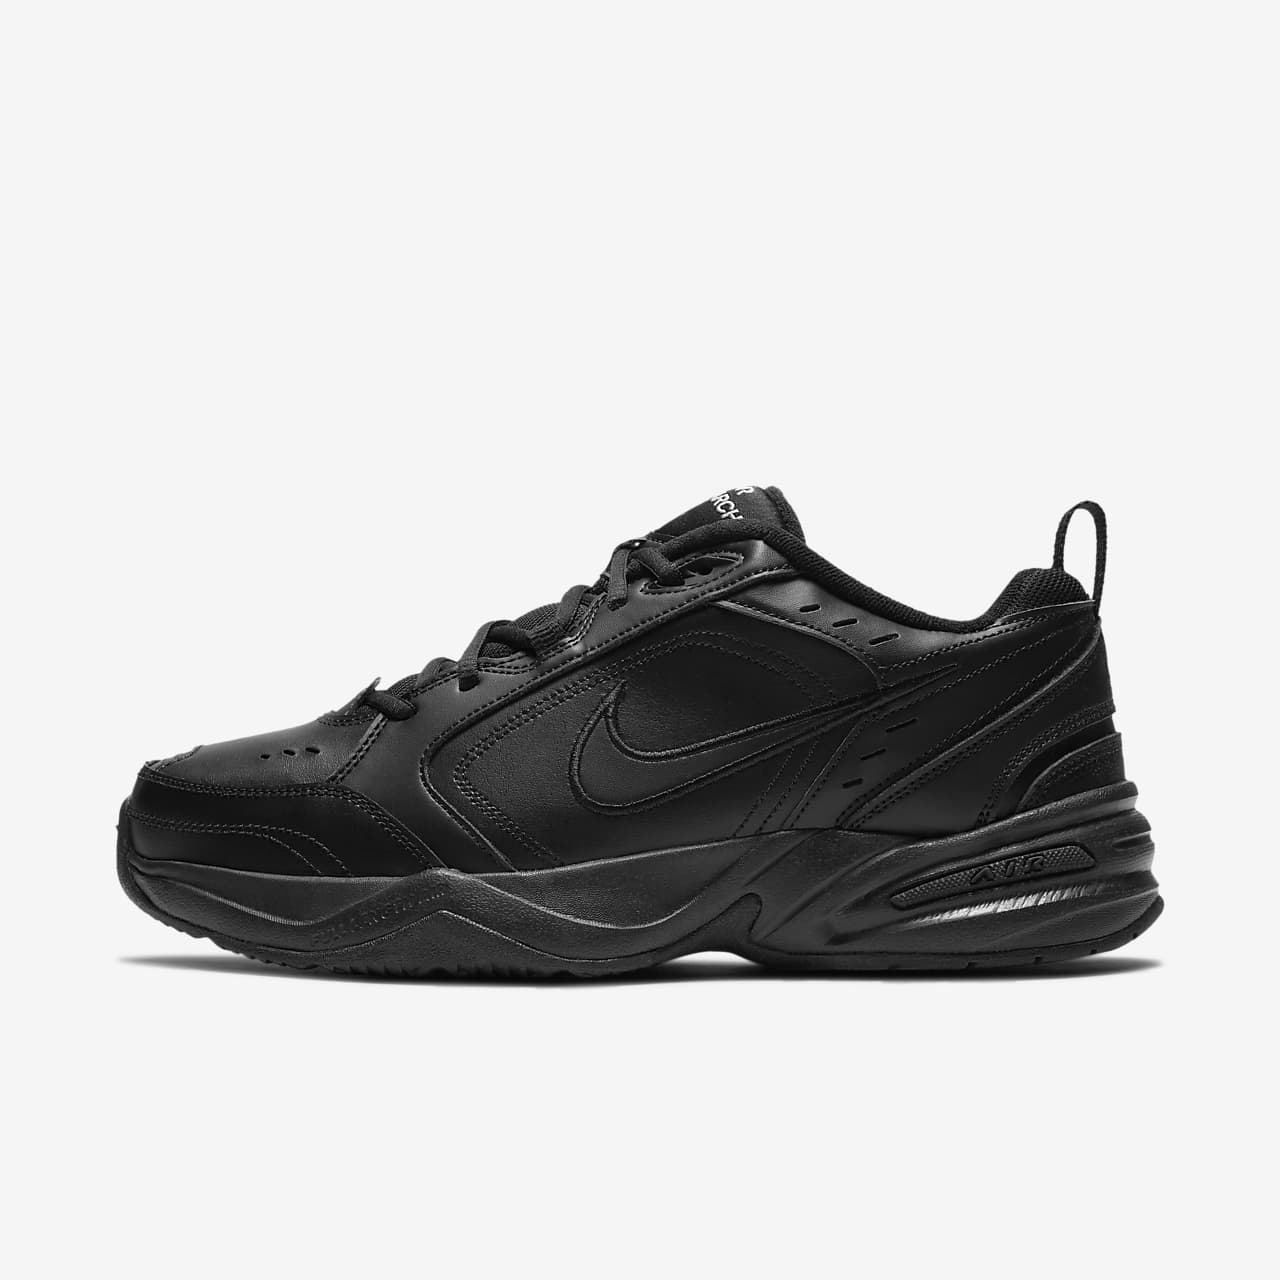 255dc435c67ab Nike Air Monarch IV Lifestyle/Gym Shoe. Nike.com IN